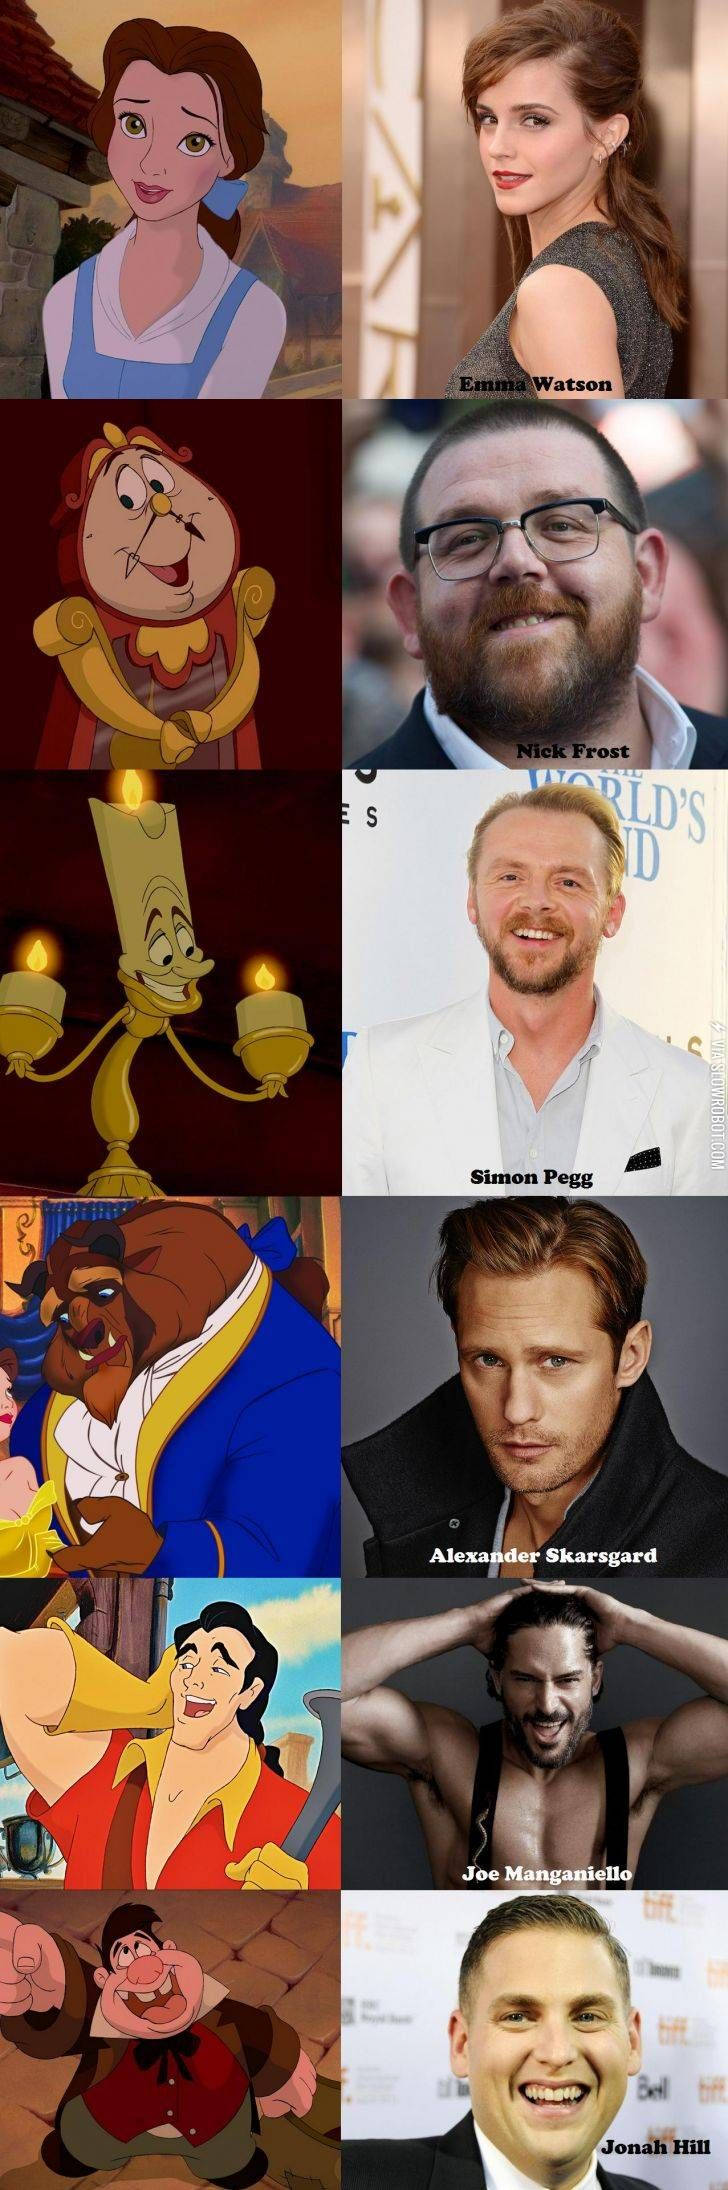 Beauty and the beast casting suggestions disney nerd